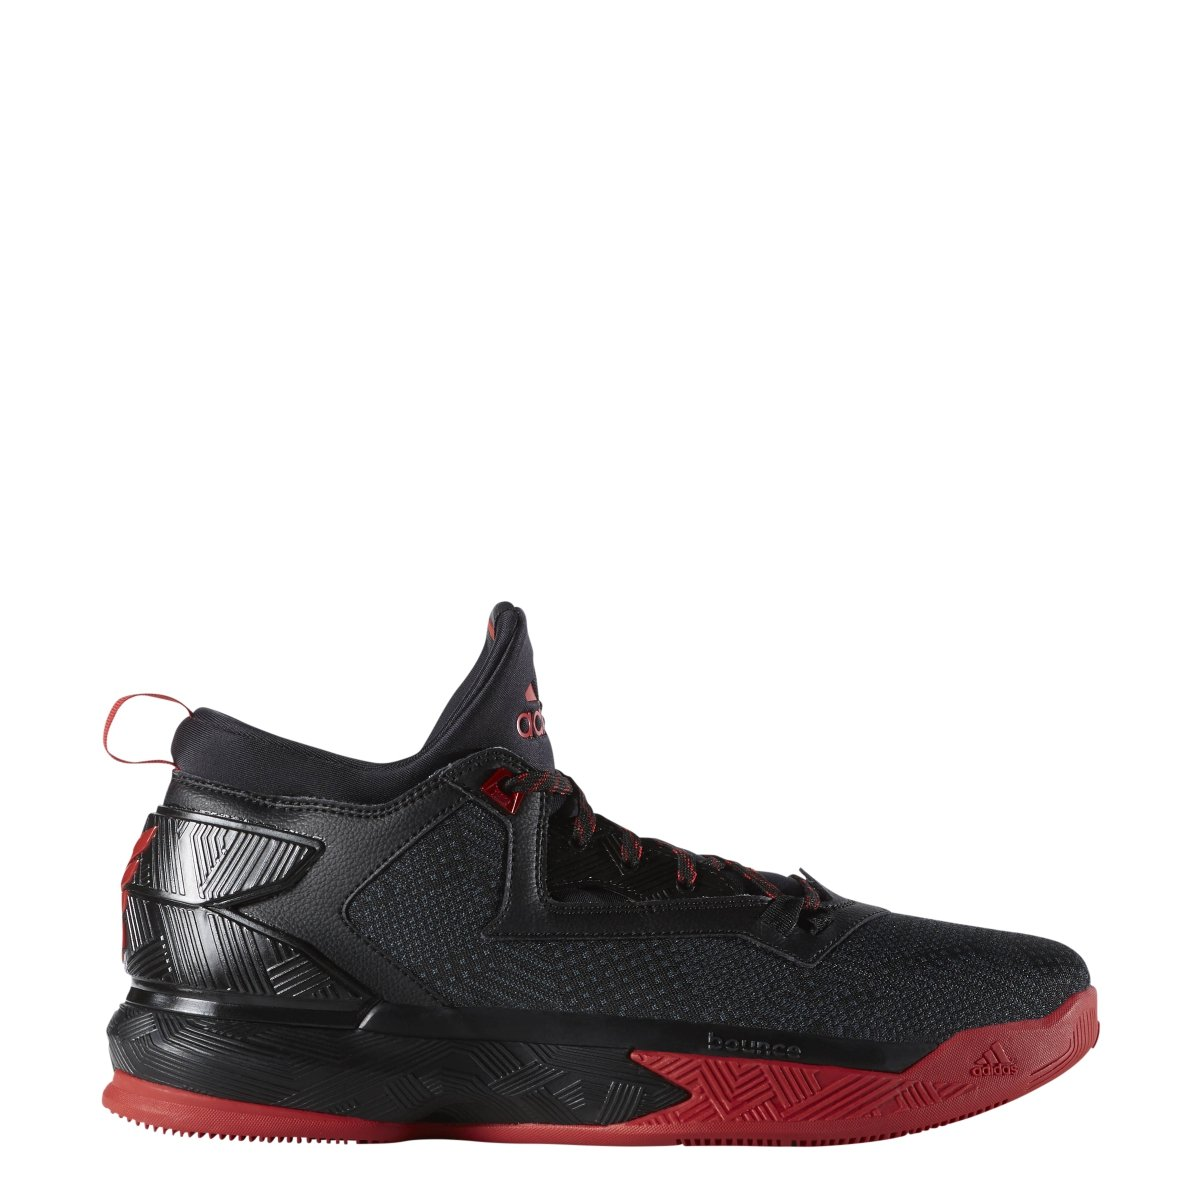 buy popular 1f76f 833ff Amazon.com   adidas D Lillard 2 Men s Basketball Shoe   Basketball